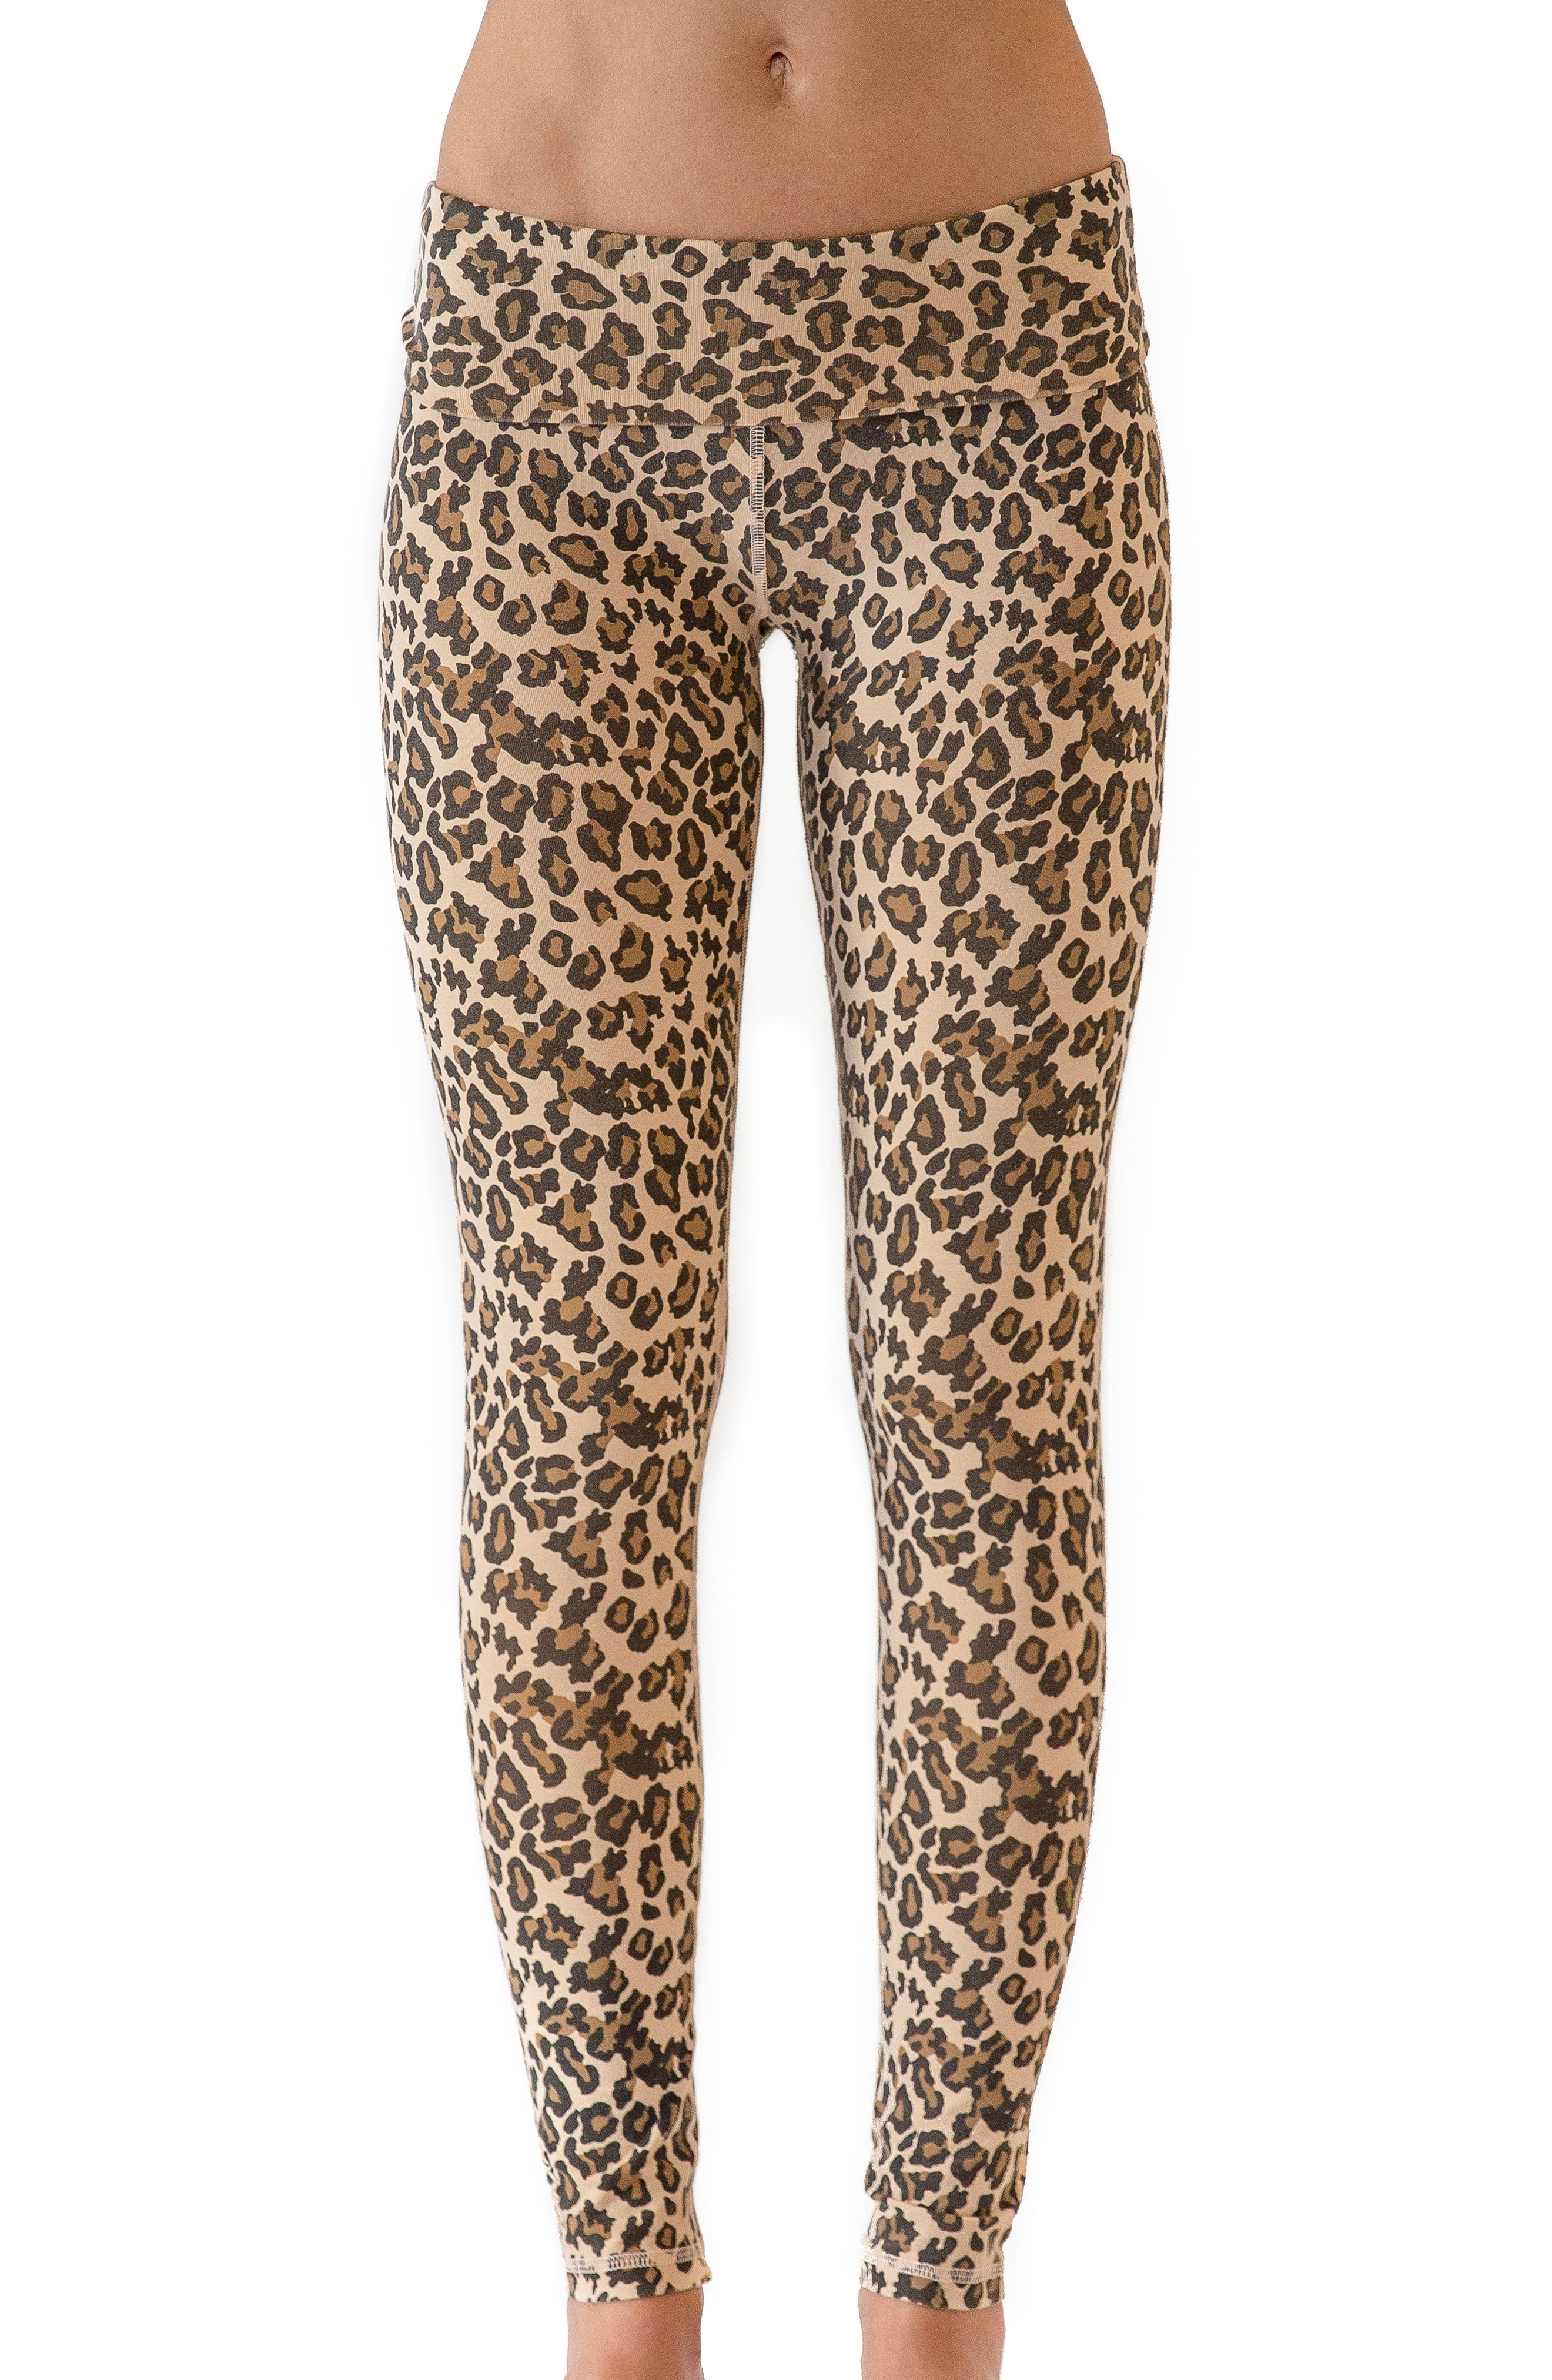 Leopard Print Leggings,                         Main,                         color, Faded Camel